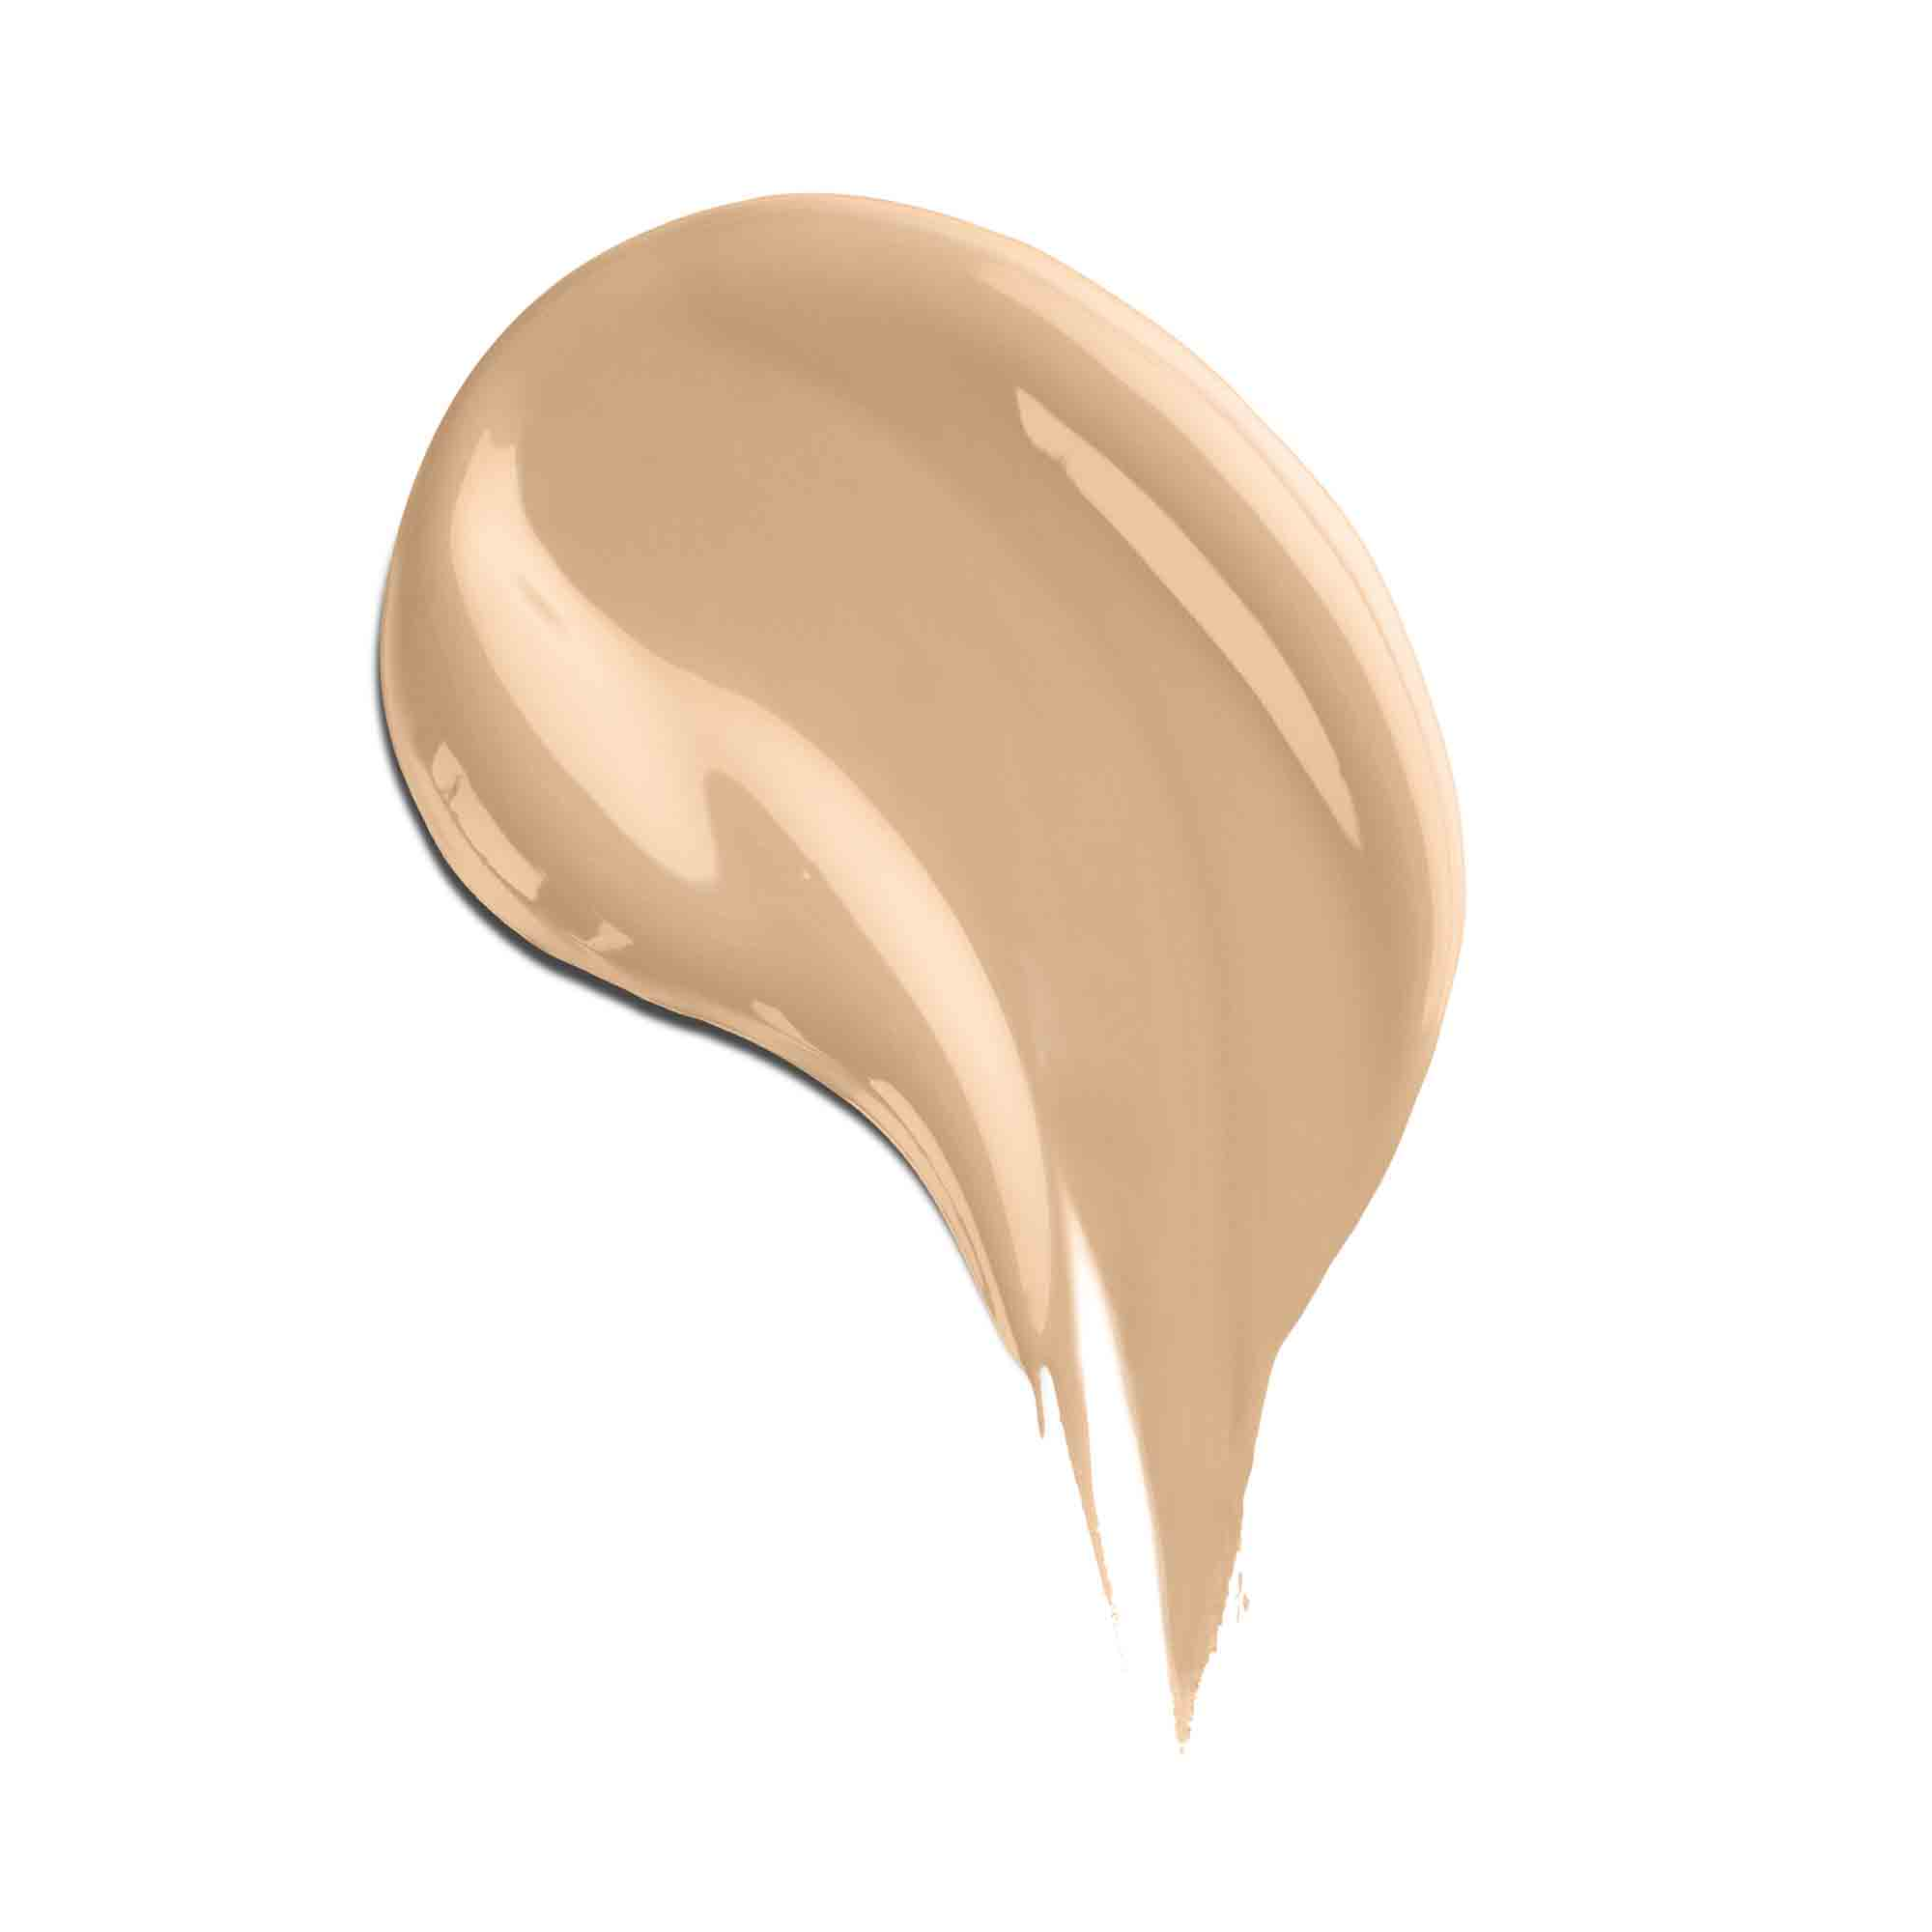 Everyday Great Skin Foundation in Wheaty by Beauty Pie